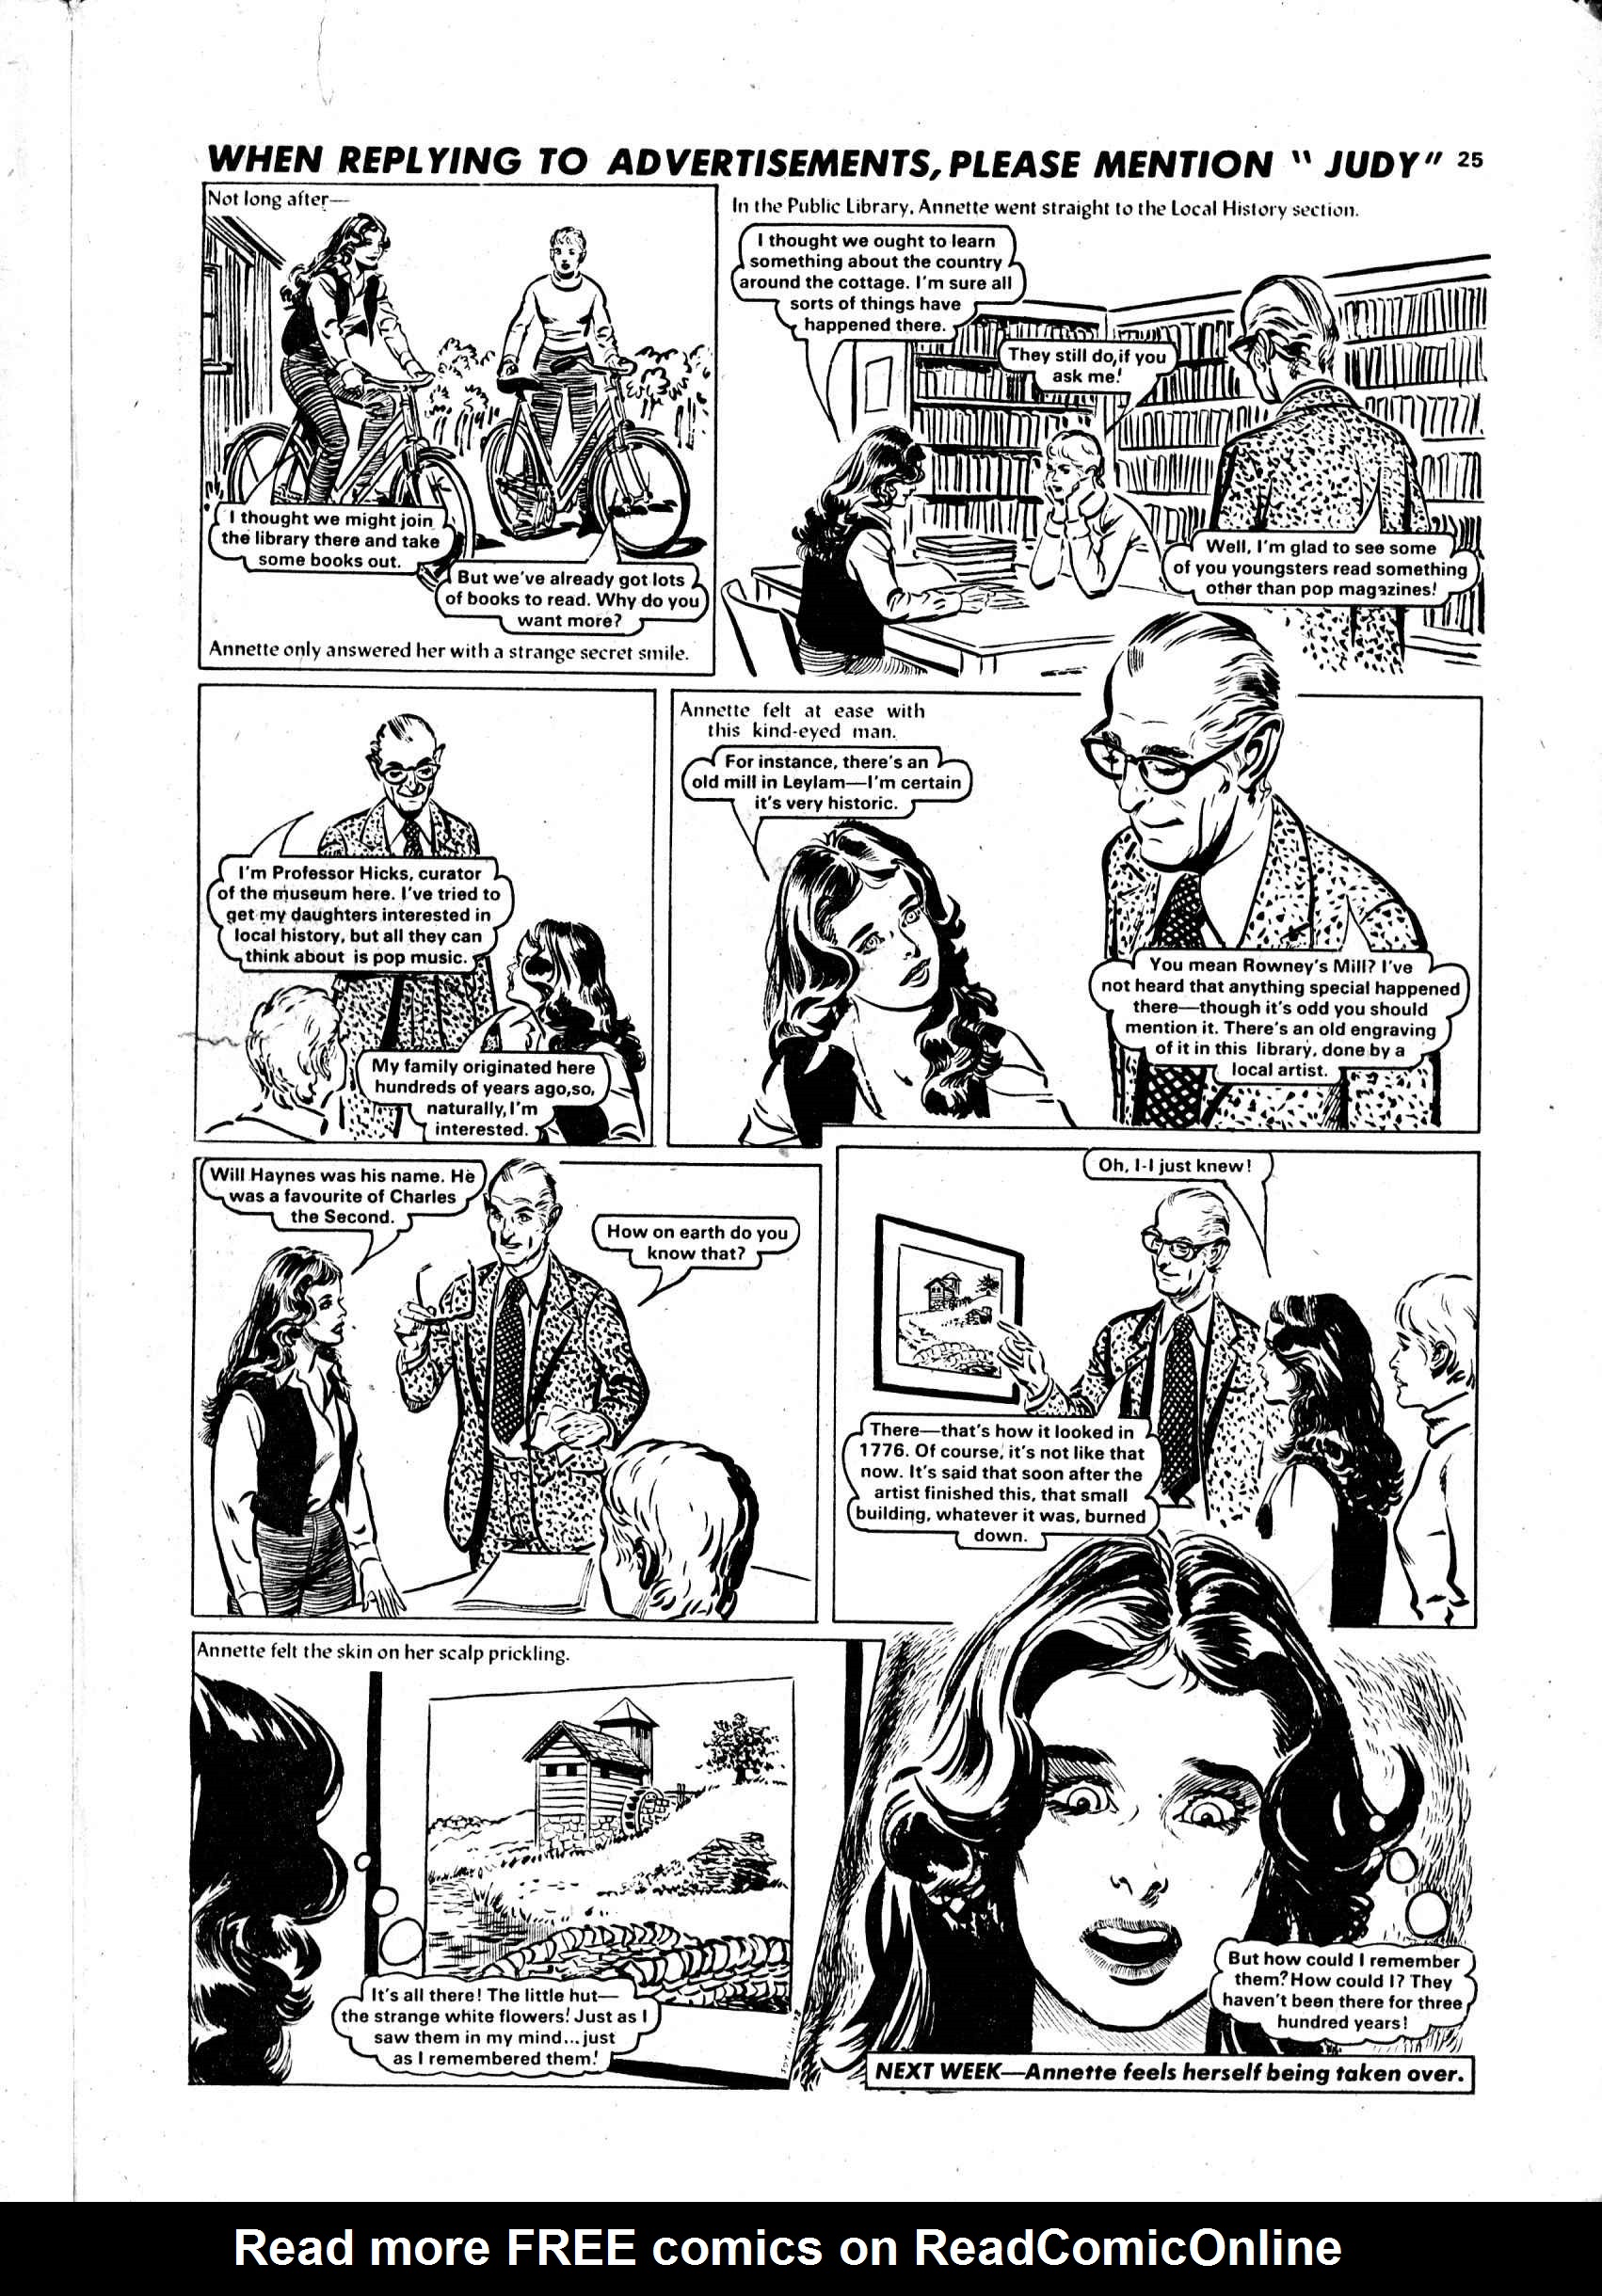 Read online Judy comic -  Issue #983 - 25